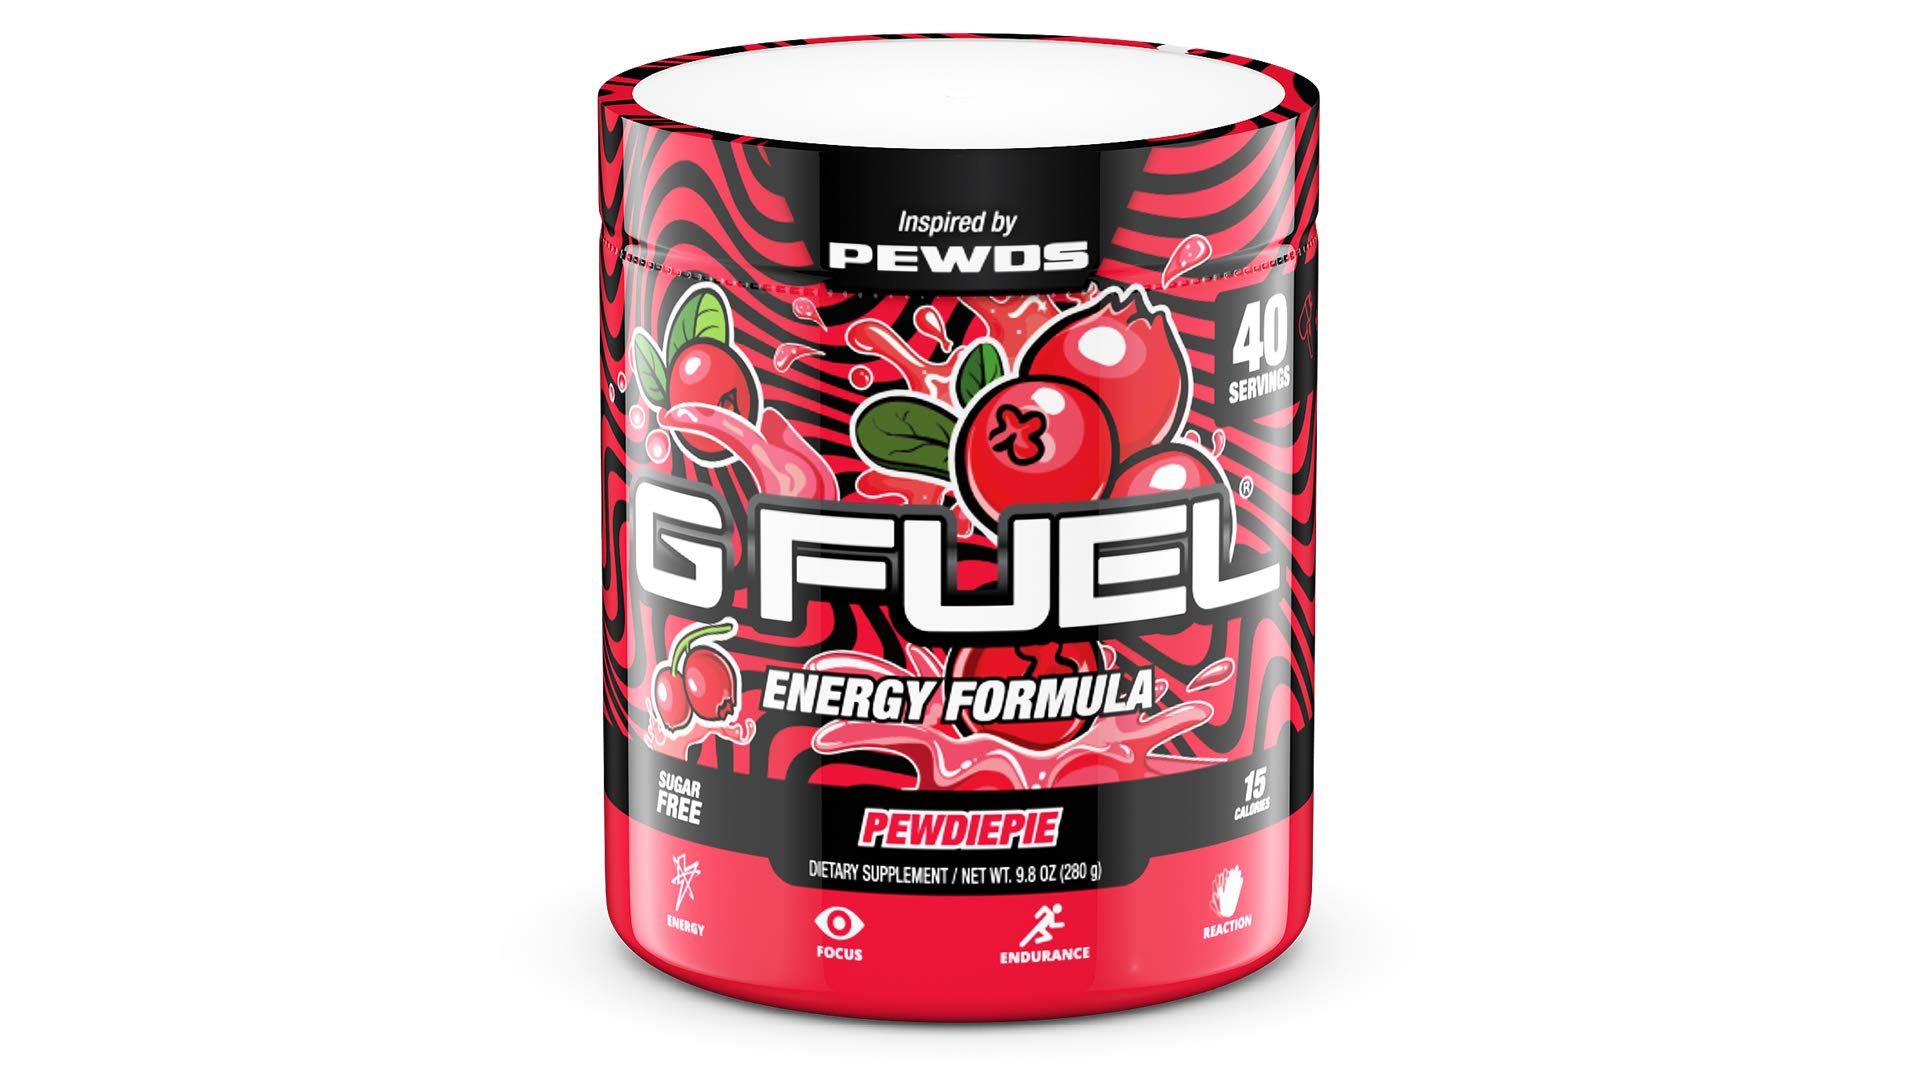 G Fuel Pewdiepie (40 Servings) Elite Energy and Endurance Powder 9.8 oz. Inspired by Pewds